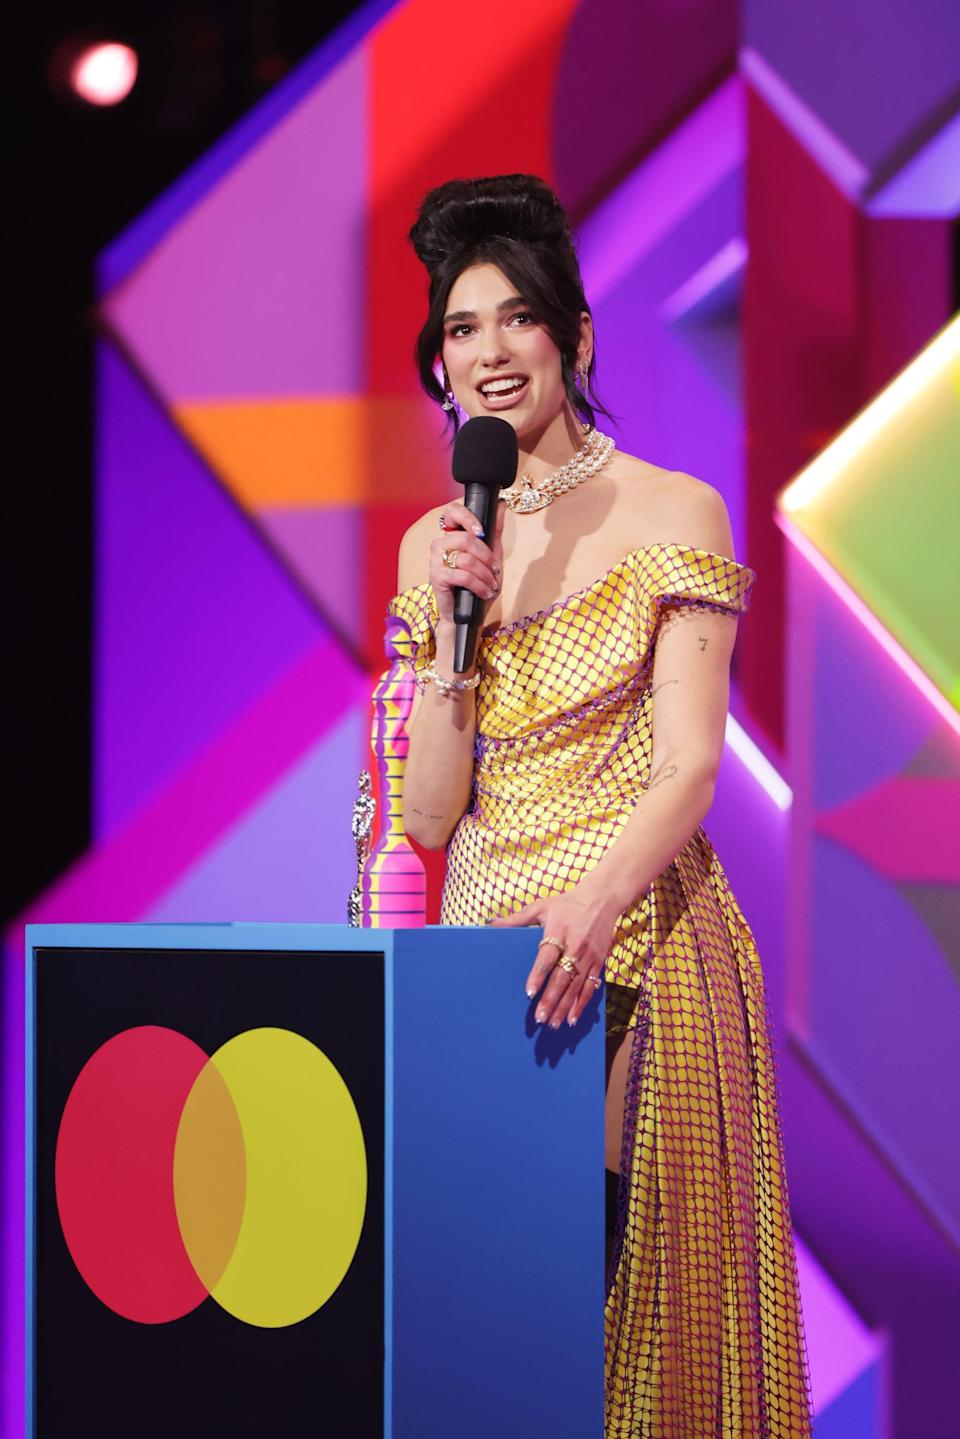 LONDON, ENGLAND - MAY 11:    Dua Lipa accepts the award for Best Female Solo Artist at The BRIT Awards 2021 at The O2 Arena on May 11, 2021 in London, England.  (Photo by David M. Benett/Dave Benett/Getty Images)